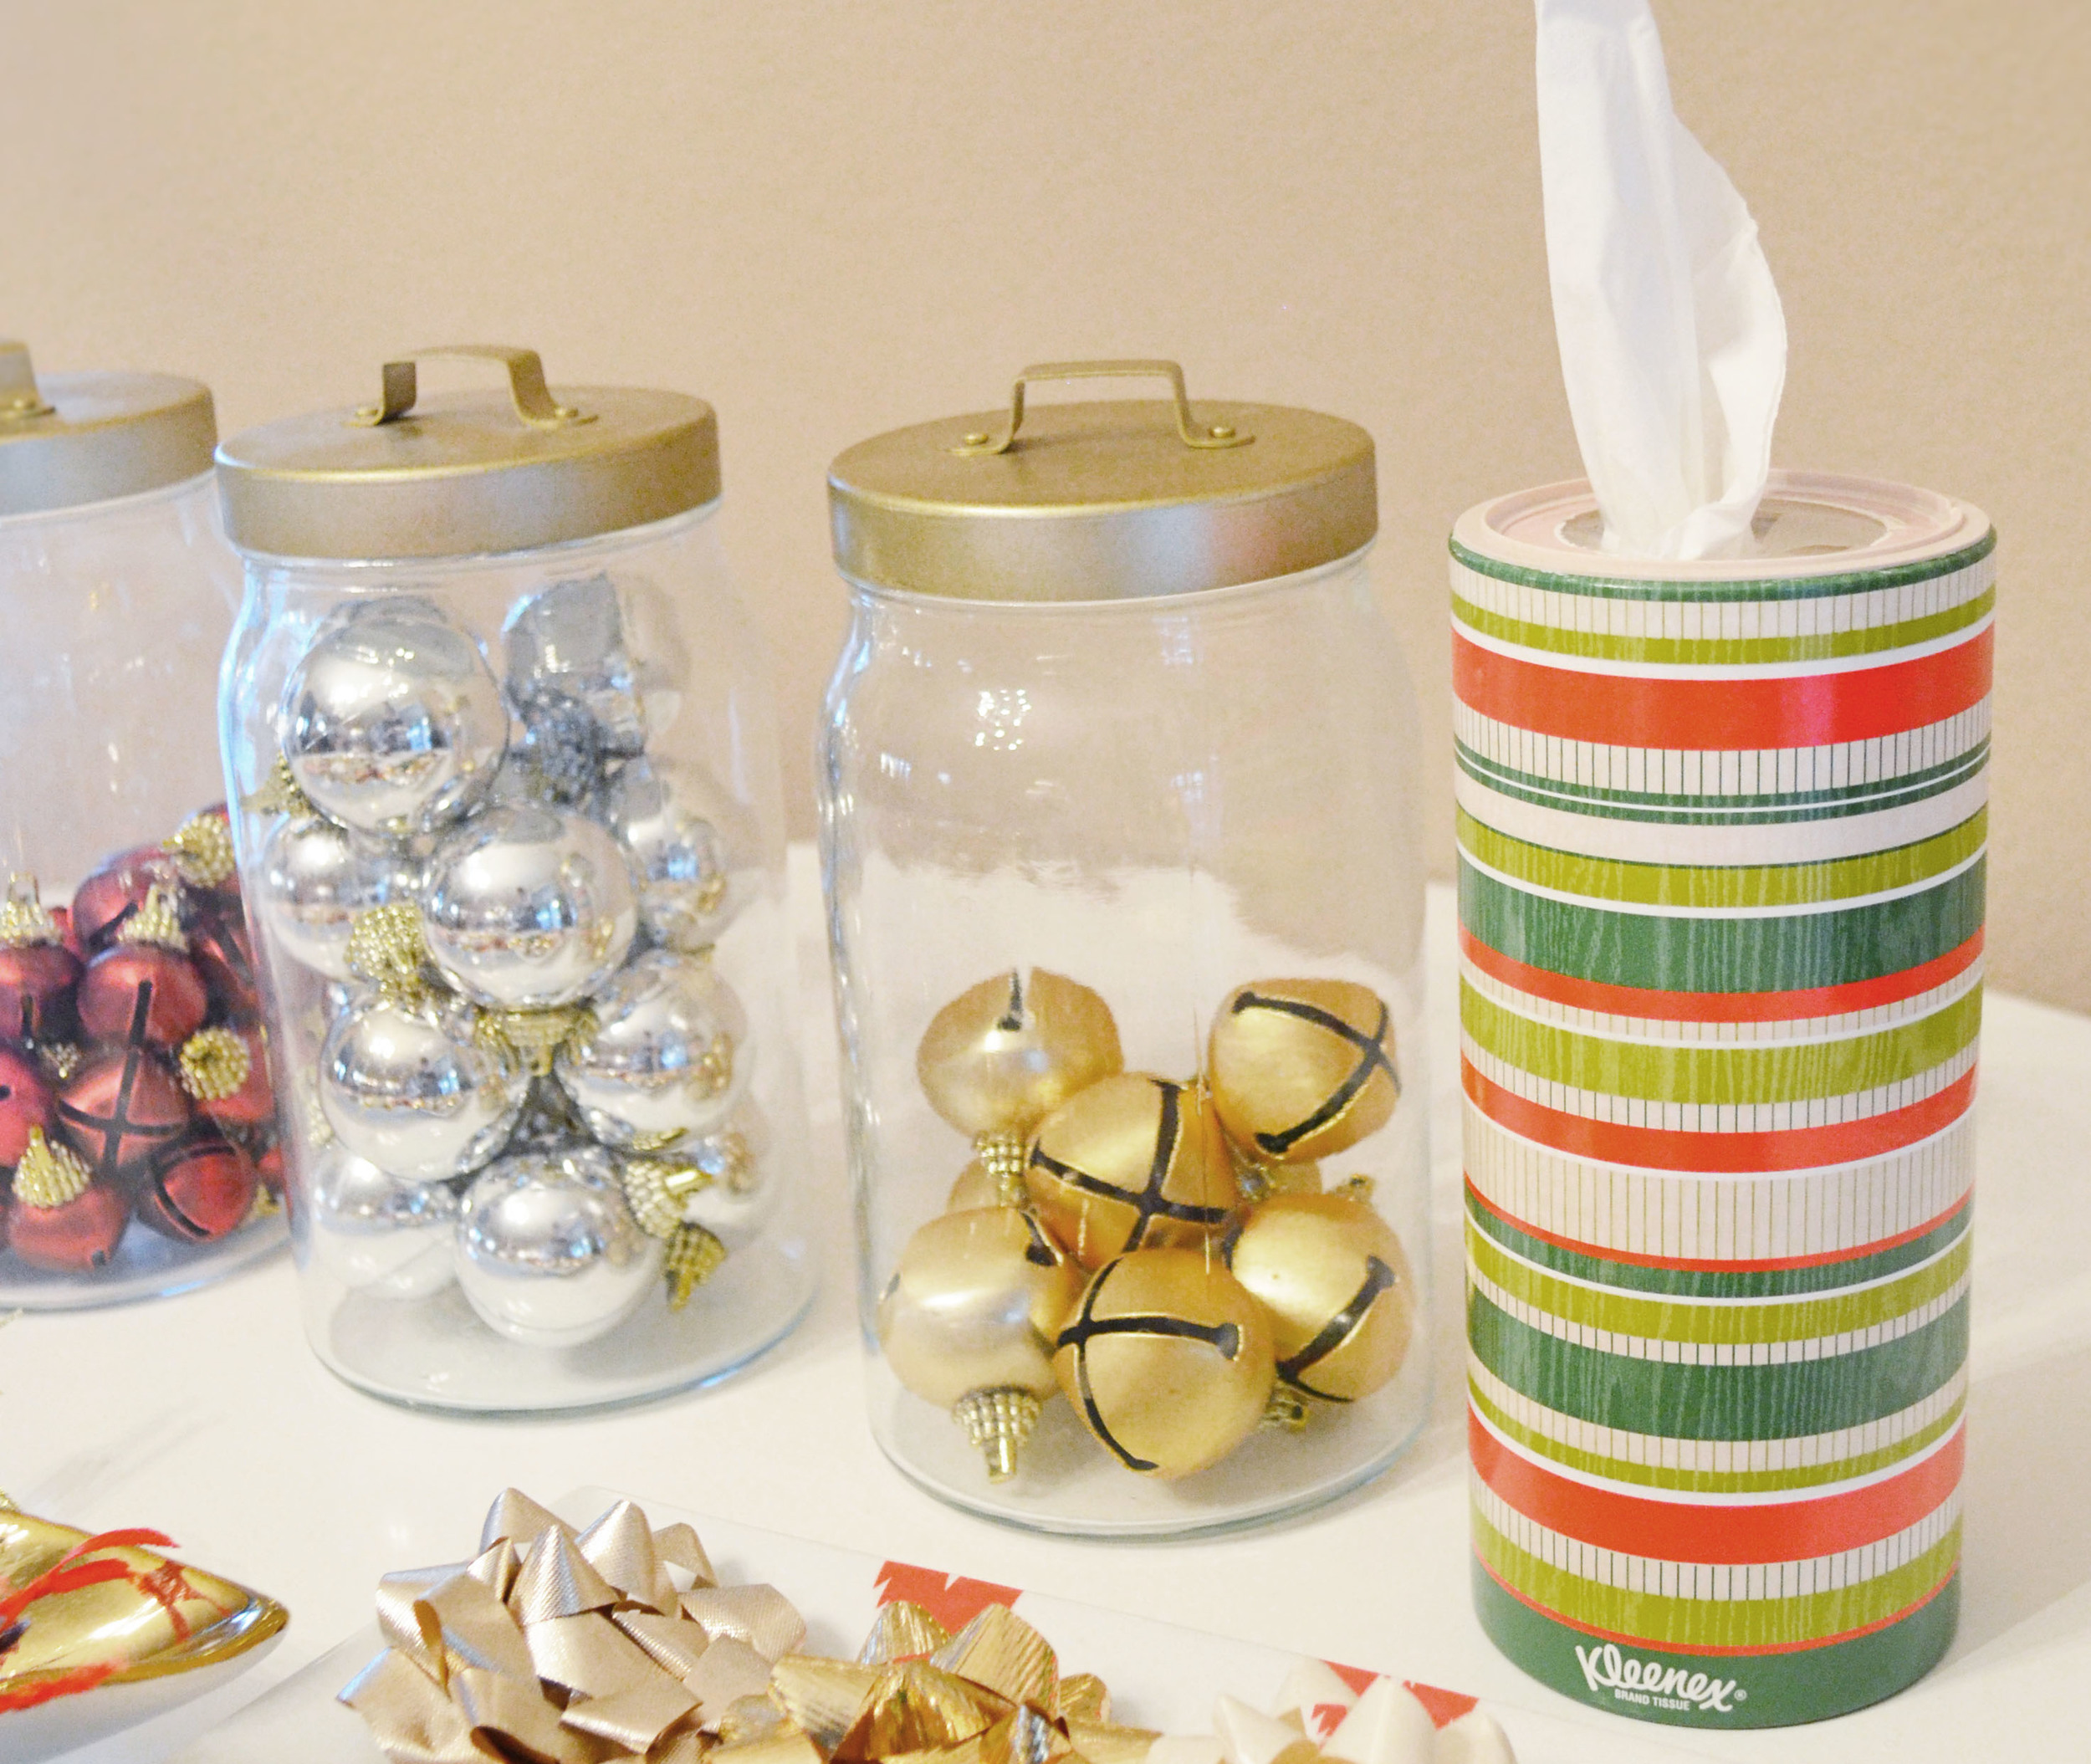 How To Host A Holiday Gift Wrapping Party | Momma Society-The Community of Modern Moms | www.mommasociety.com | #HolidayNecessities #CG